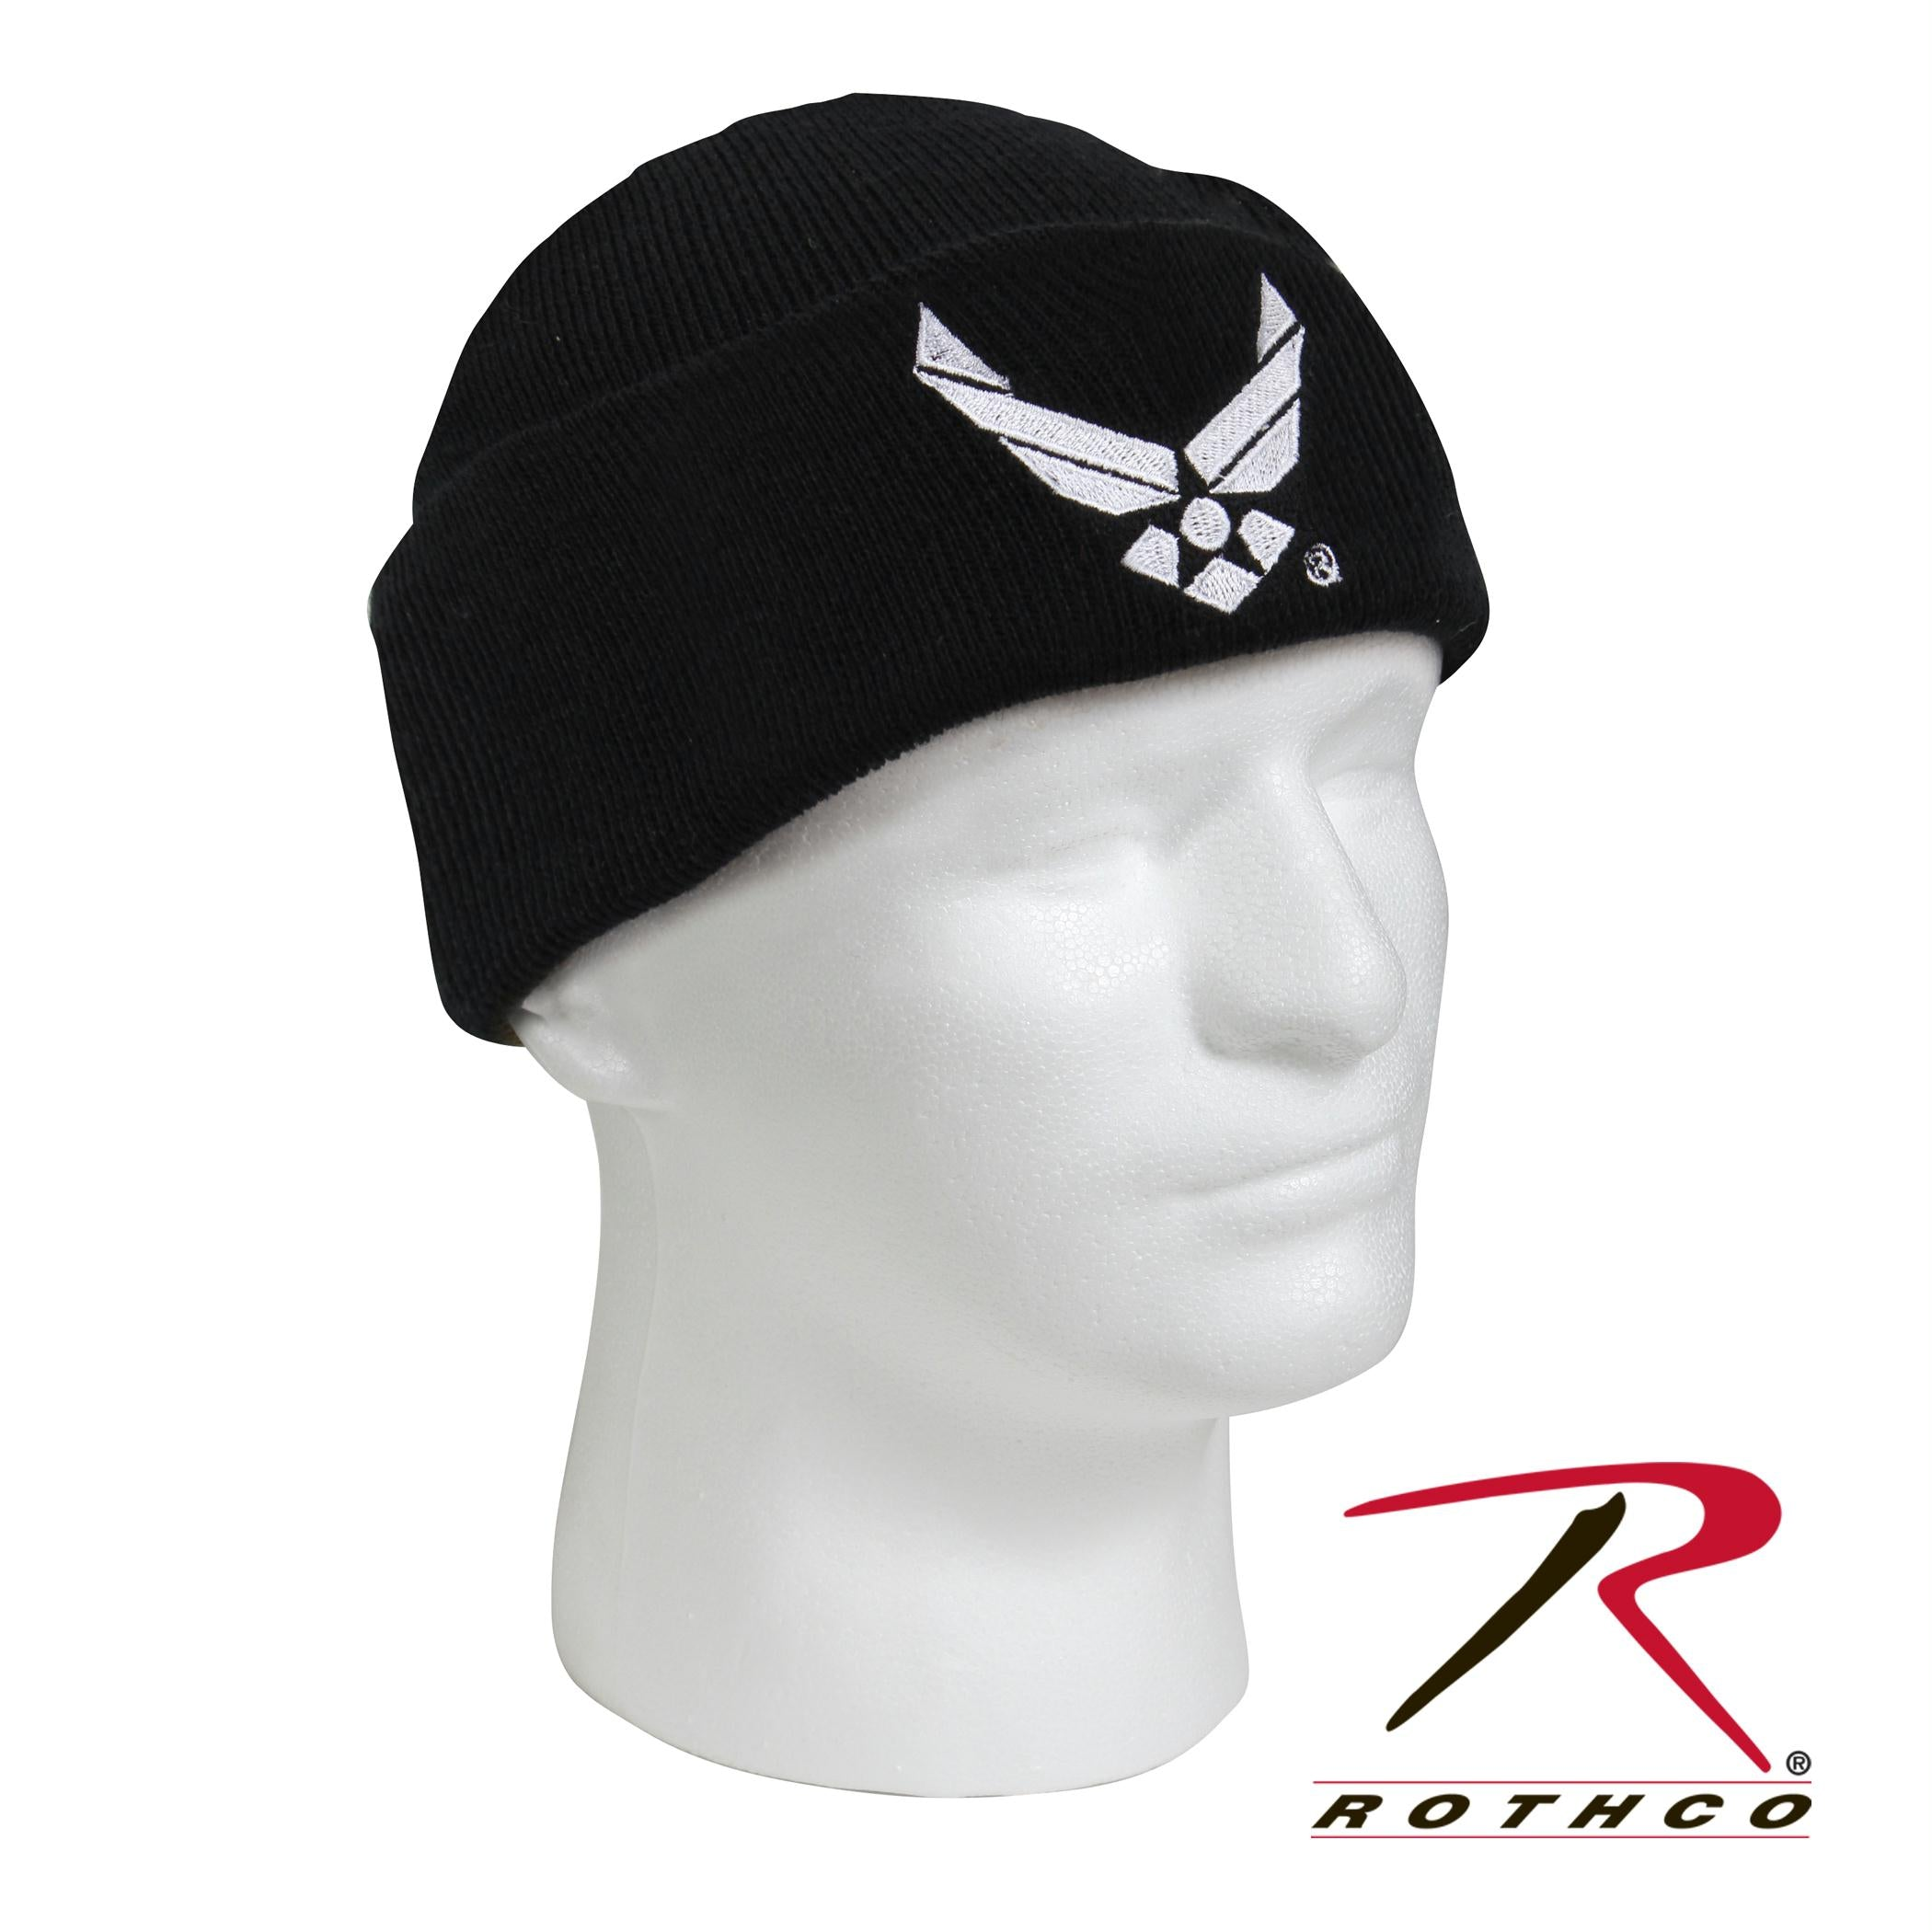 Rothco Embroidered Military Watch Cap - Air Force